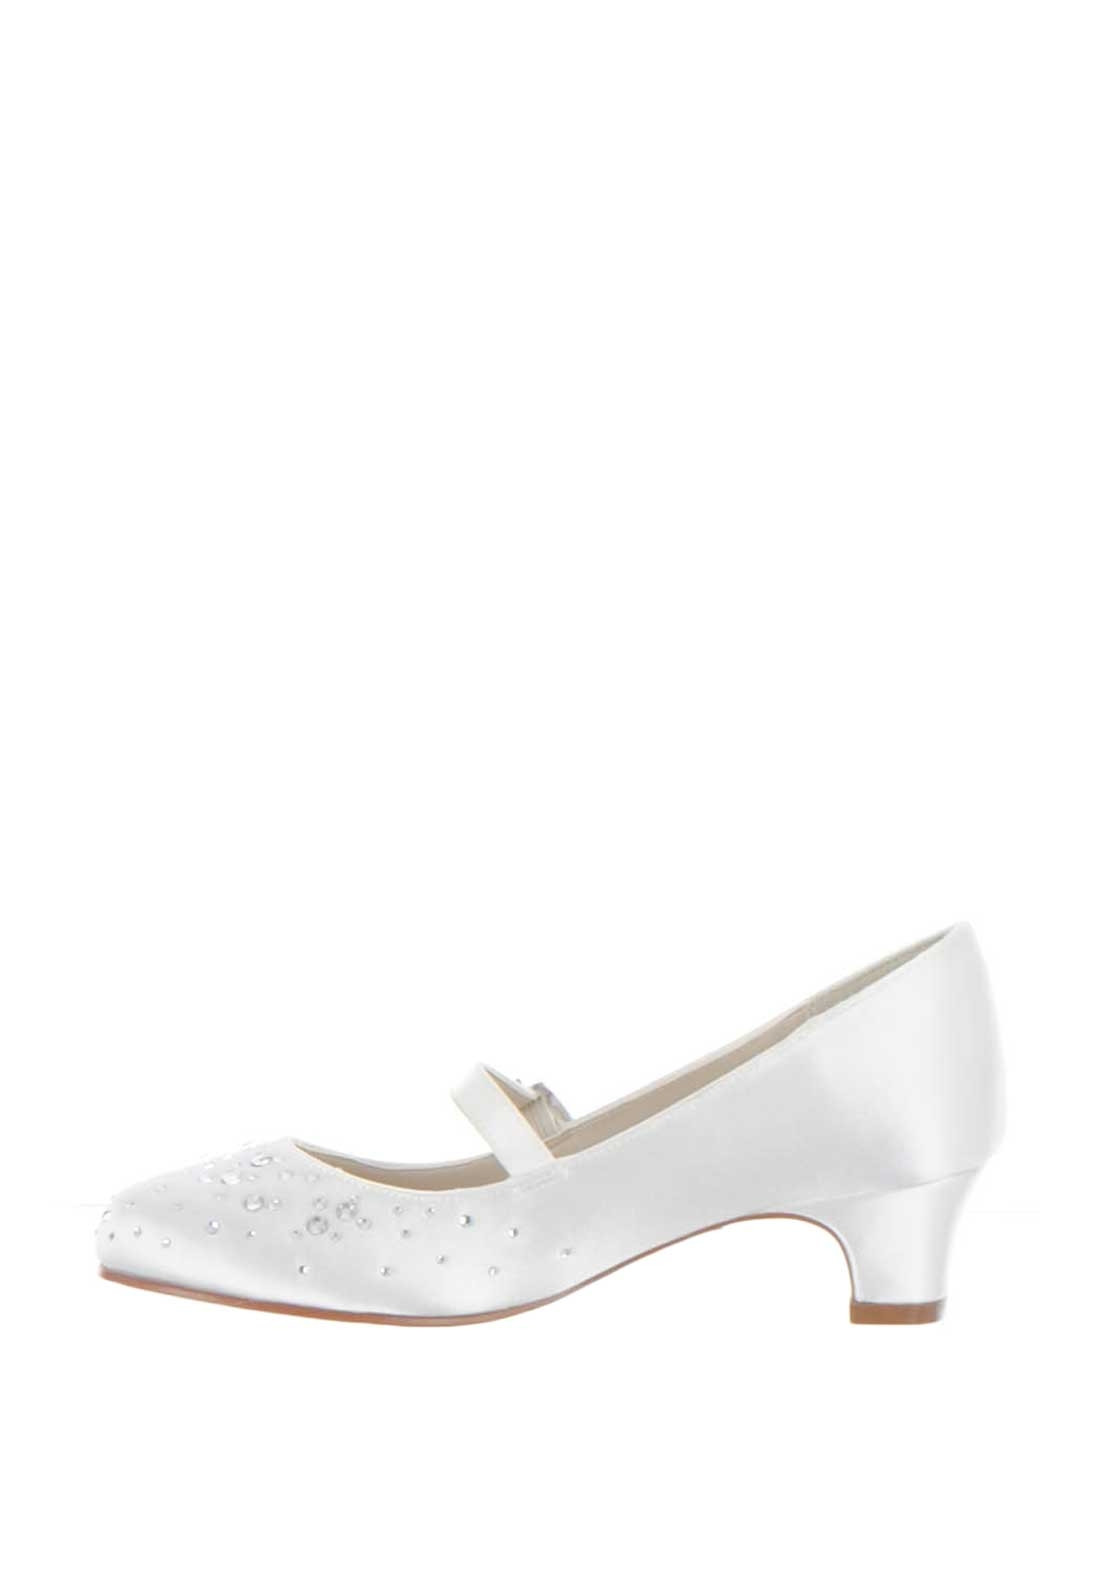 243b150fd Rainbow Club Cherry Sparkly Communion Shoes, White. Be the first to review  this product